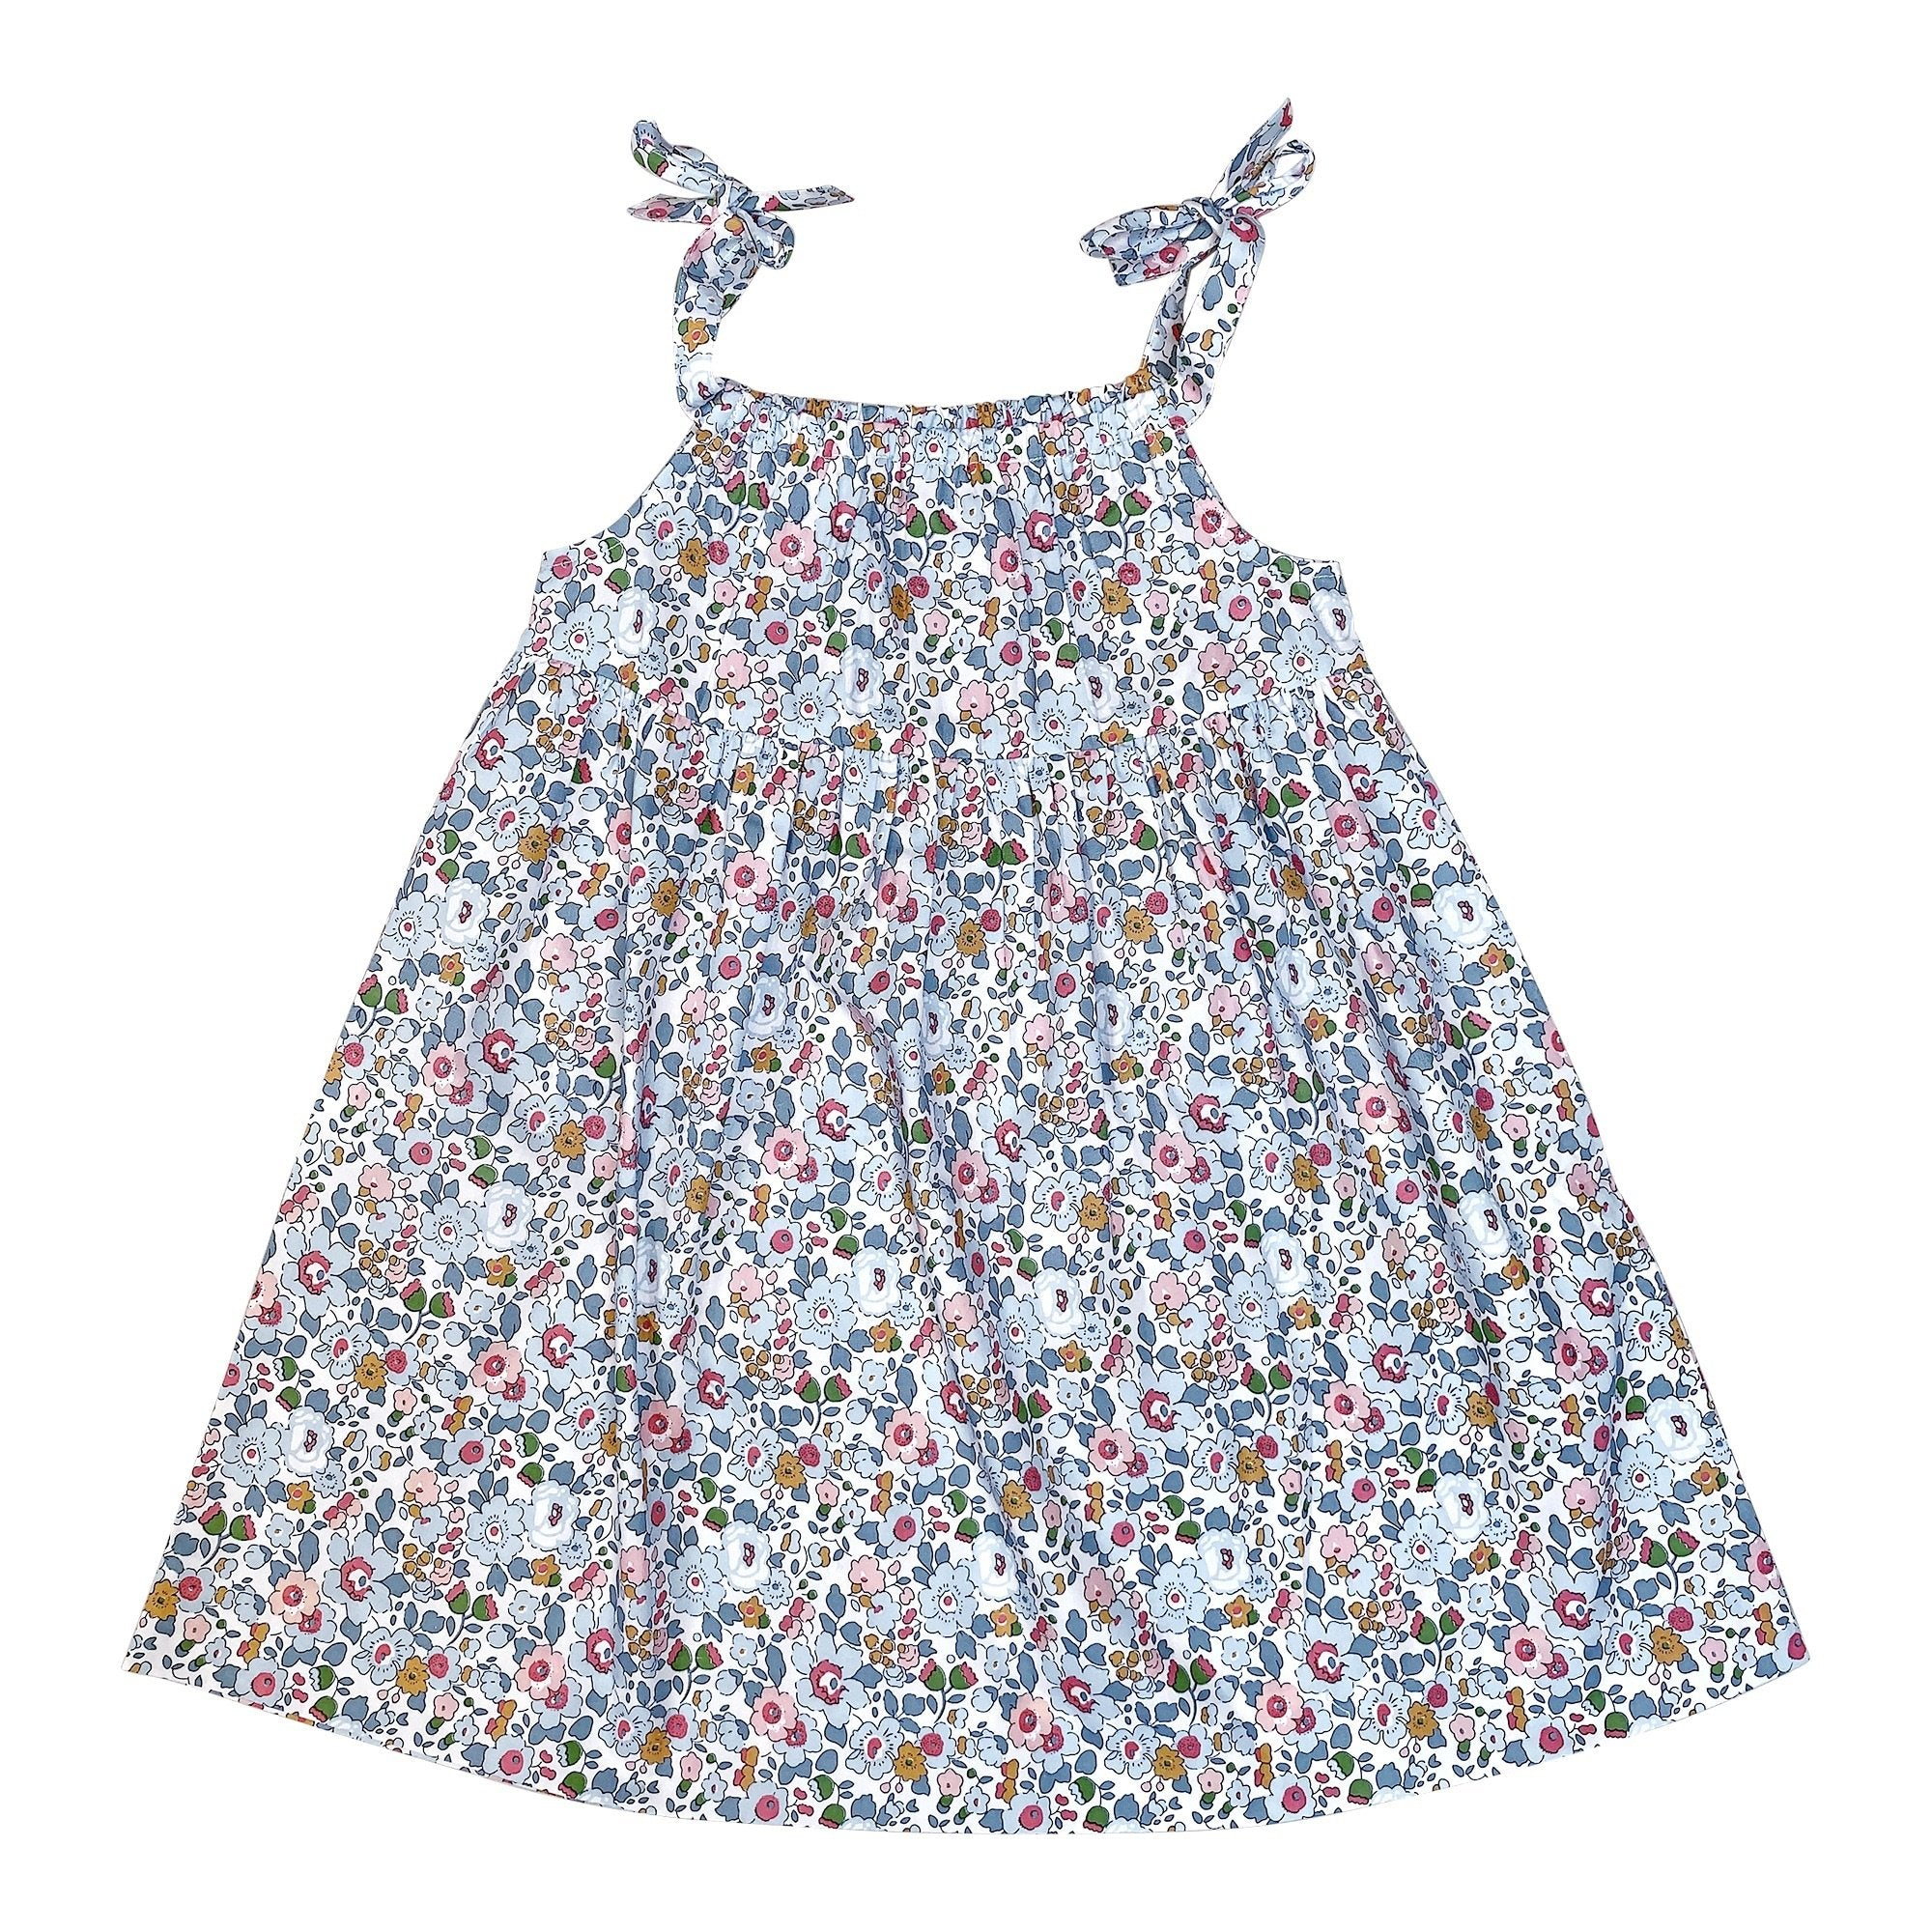 CLEMENTINE DRESS IN PALE BLUE LIBERTY PRINT